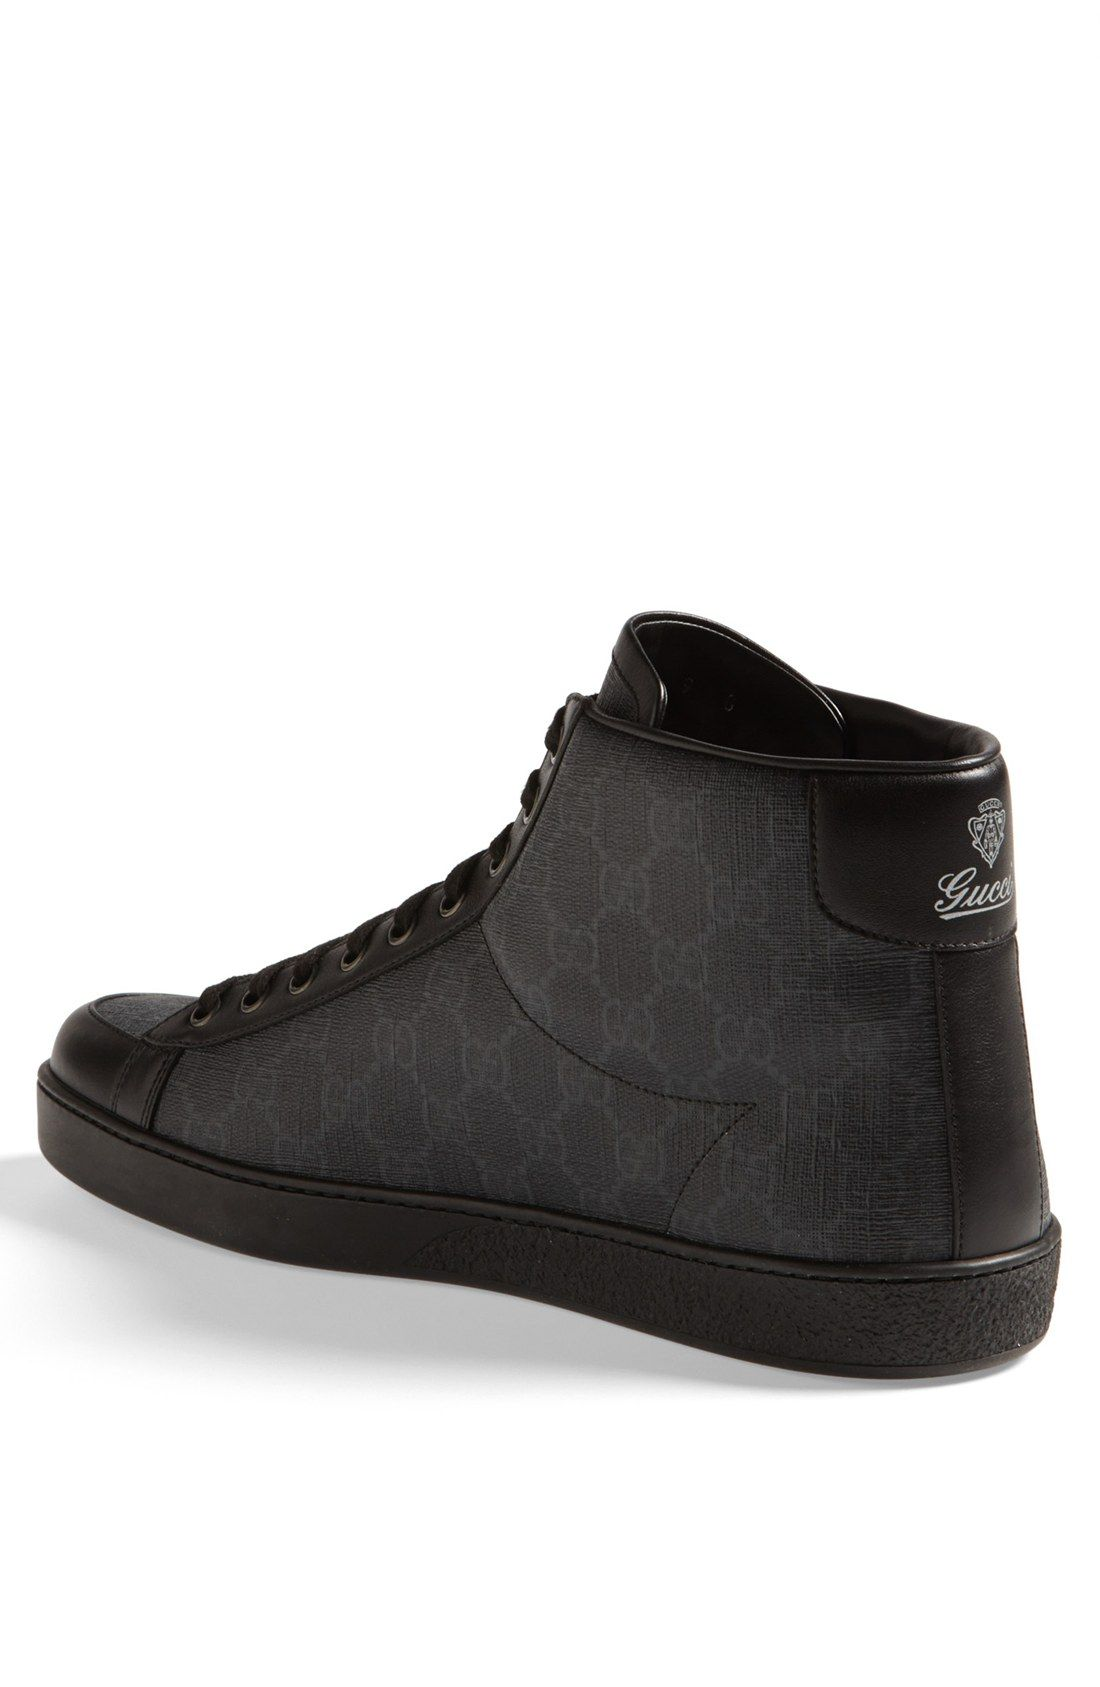 a286827b826 Free shipping and returns on Gucci  Brooklyn  Sneaker at Nordstrom.com. A  vintage-inspired brand imprint patterns a sharp sneaker trimmed with rich  leather.